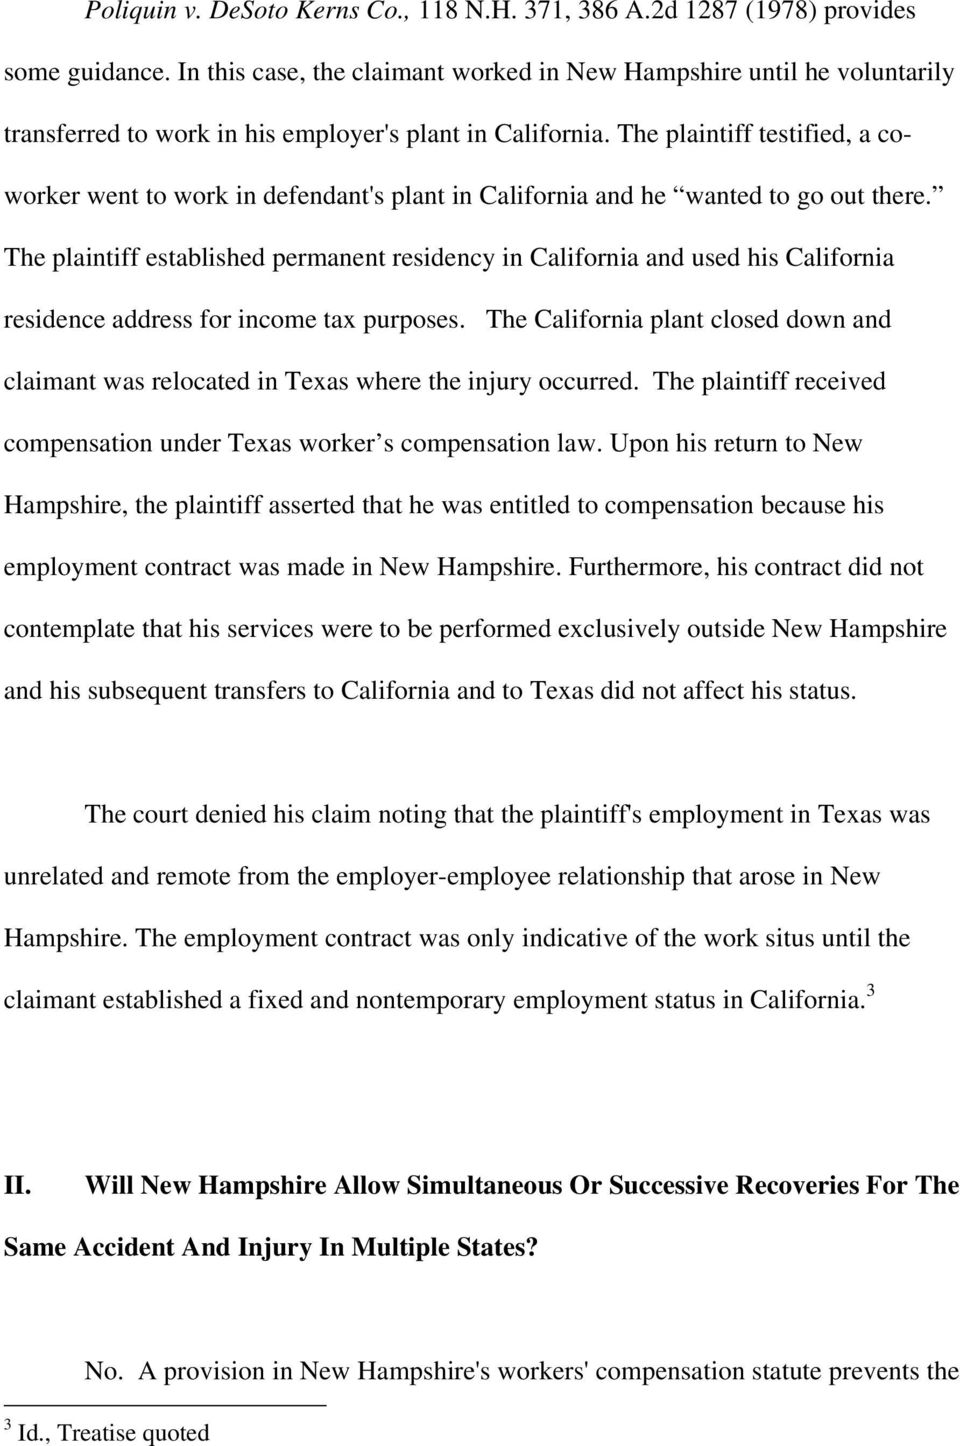 The plaintiff testified, a coworker went to work in defendant's plant in California and he wanted to go out there.